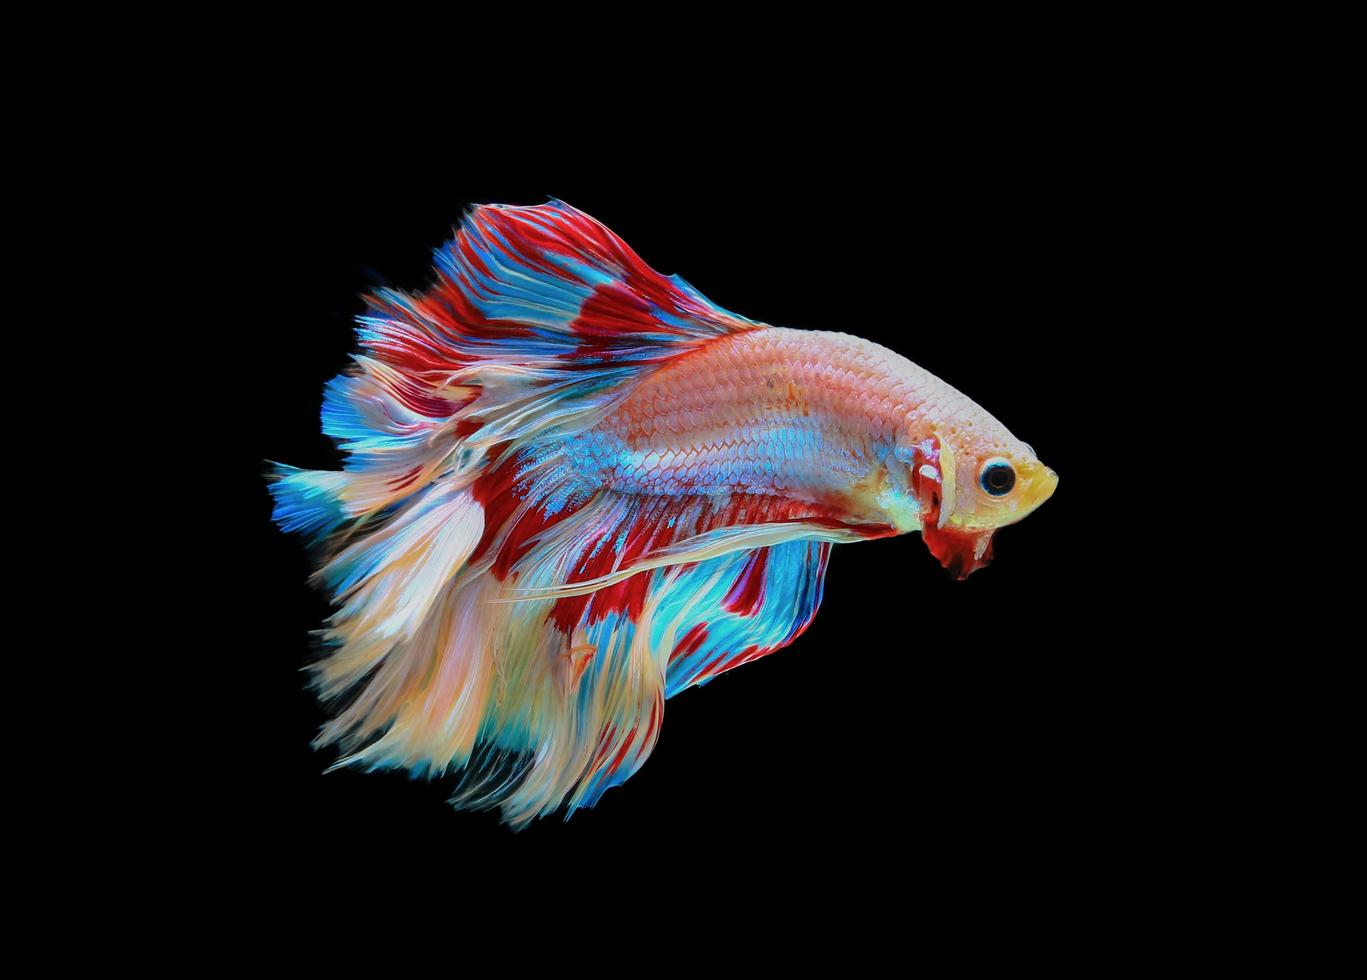 Close-up of a colorful betta fish photo